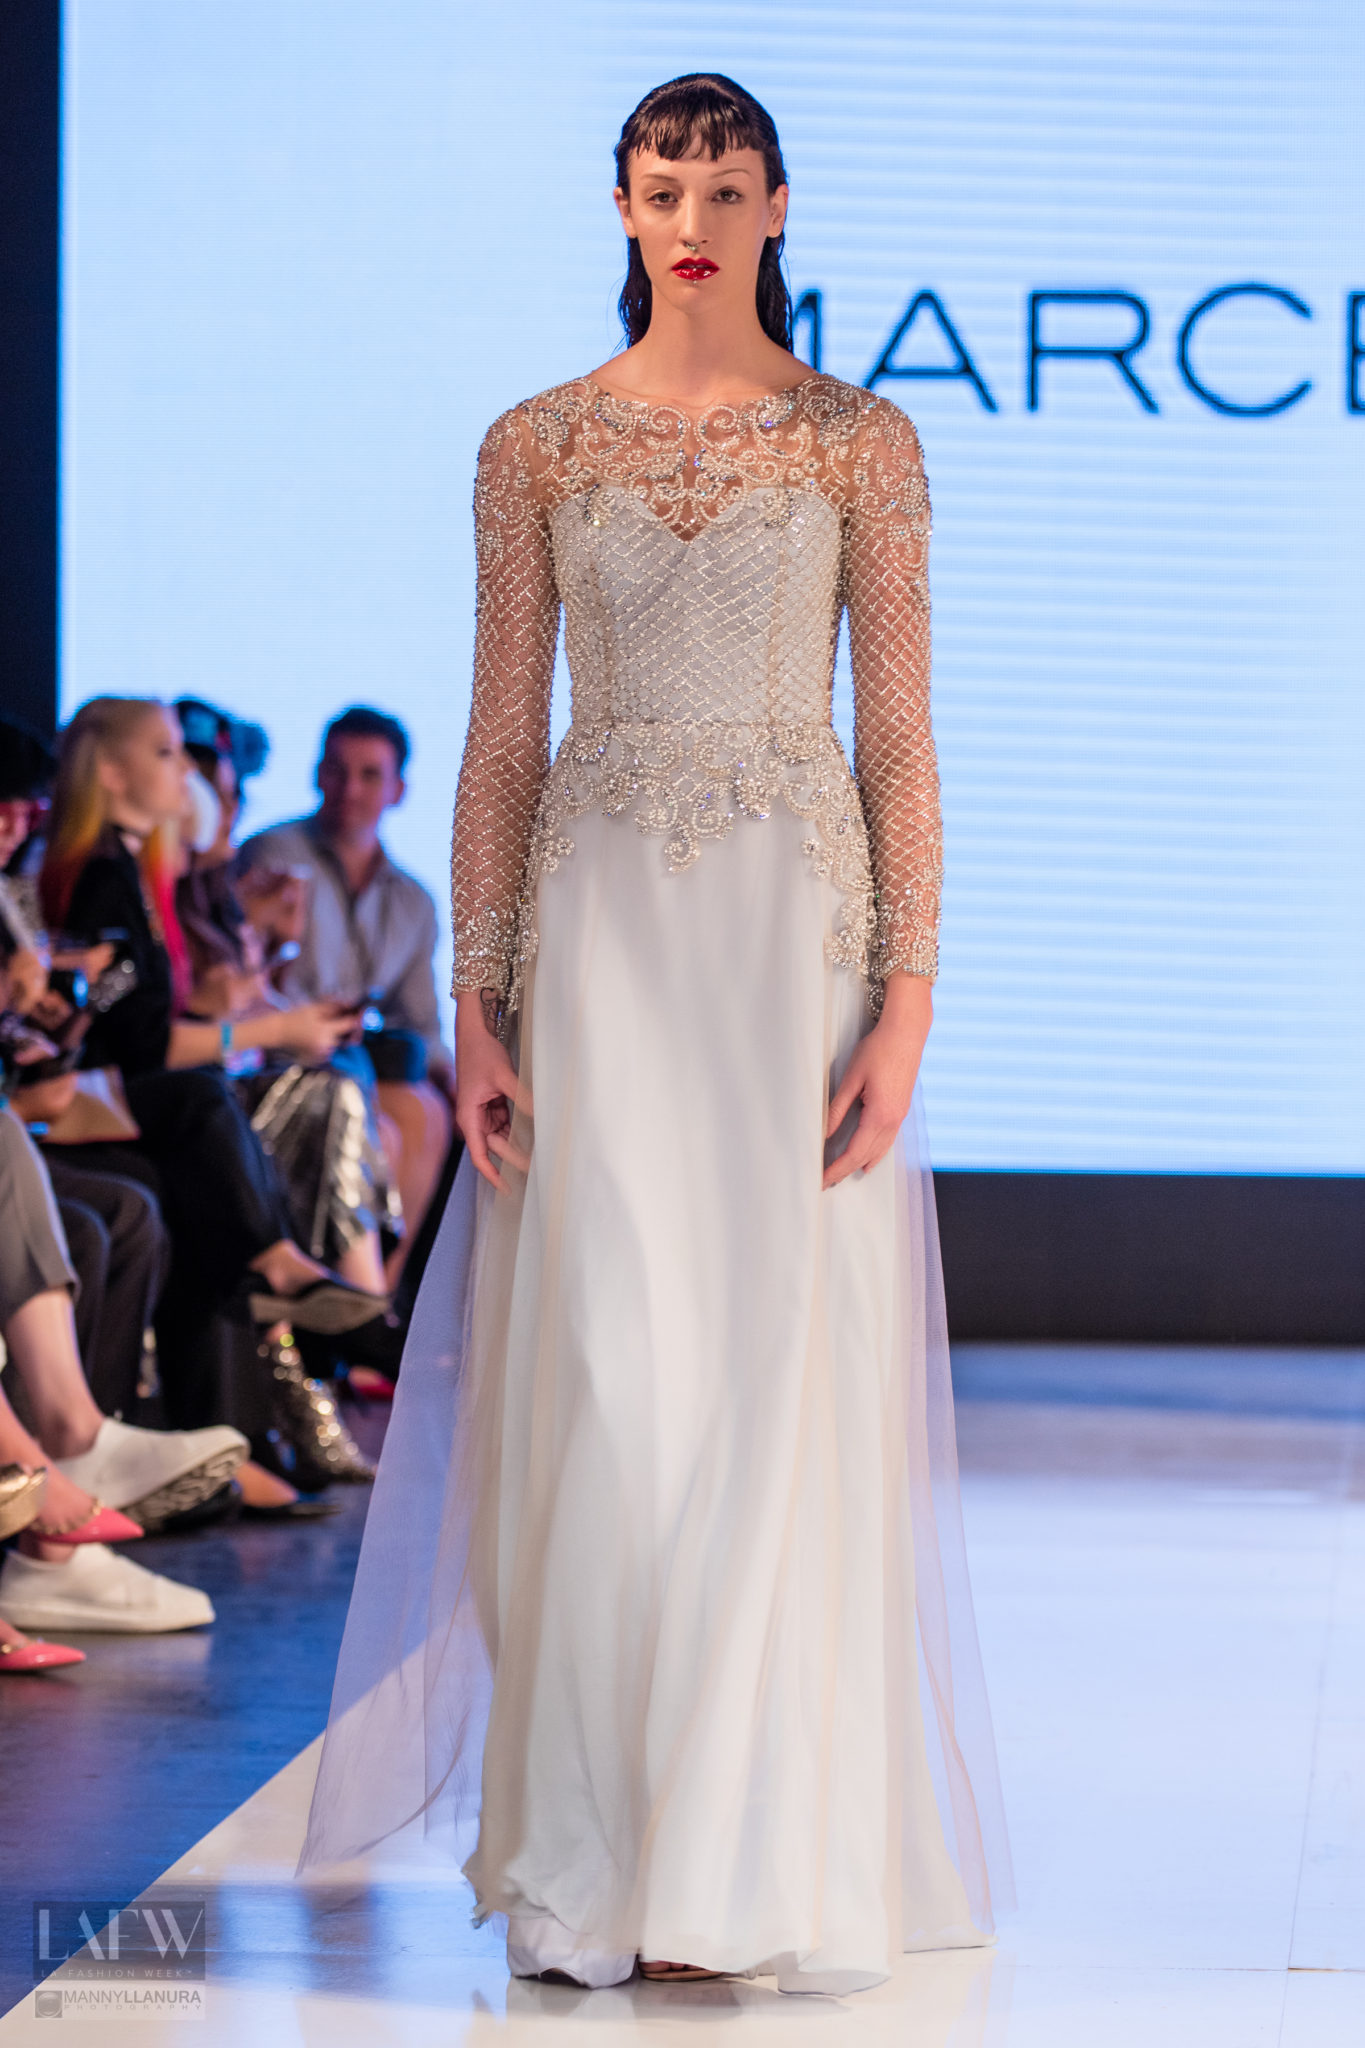 A model walks the runway wearing Marcelo Quadros at LAFW Los Angeles Fashion Week SS17